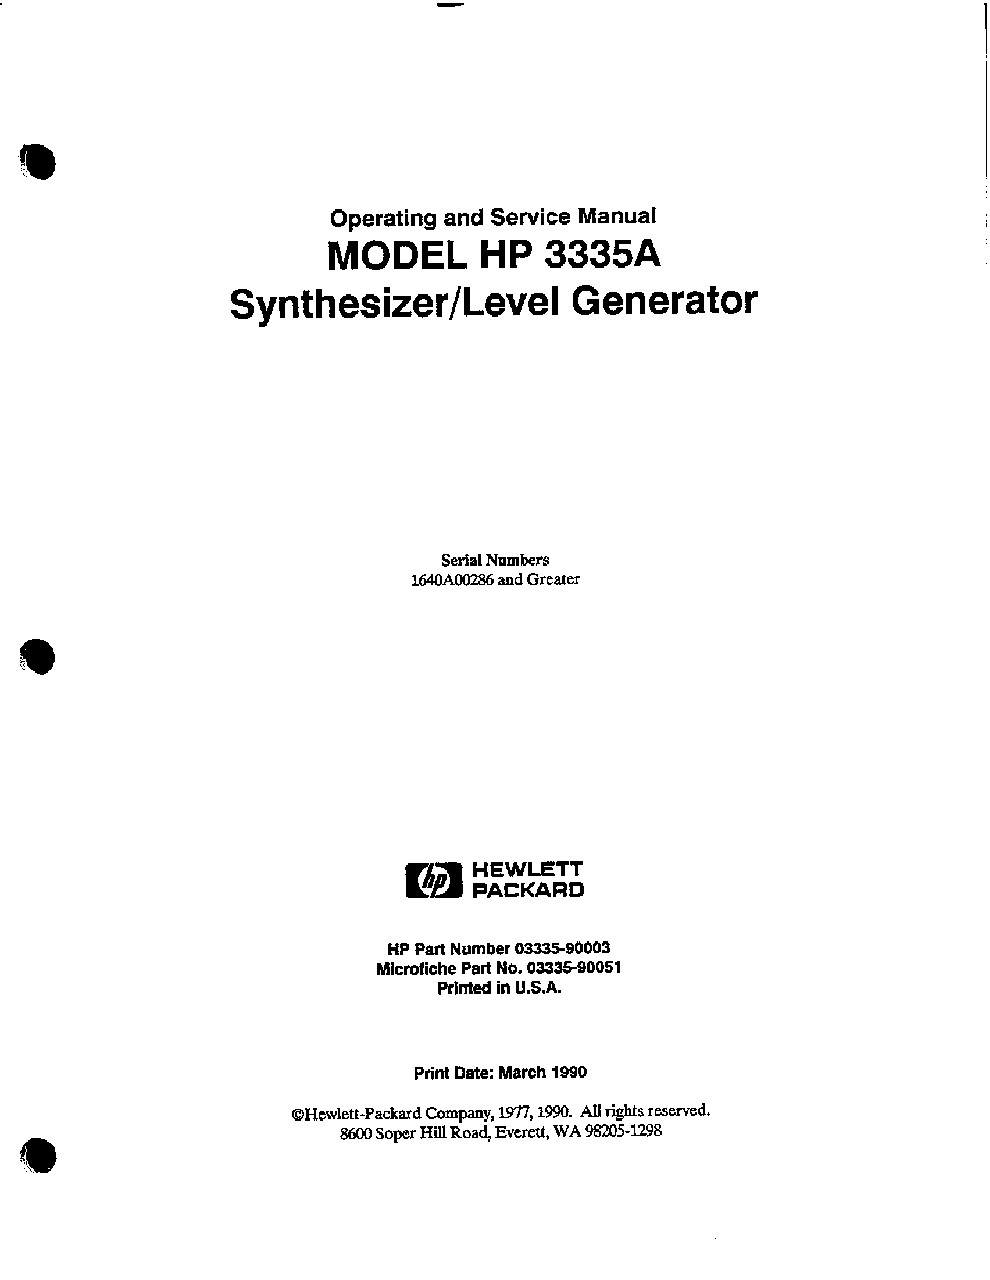 3335A Synthesizer/Level Generator Operating and Service Manual ...